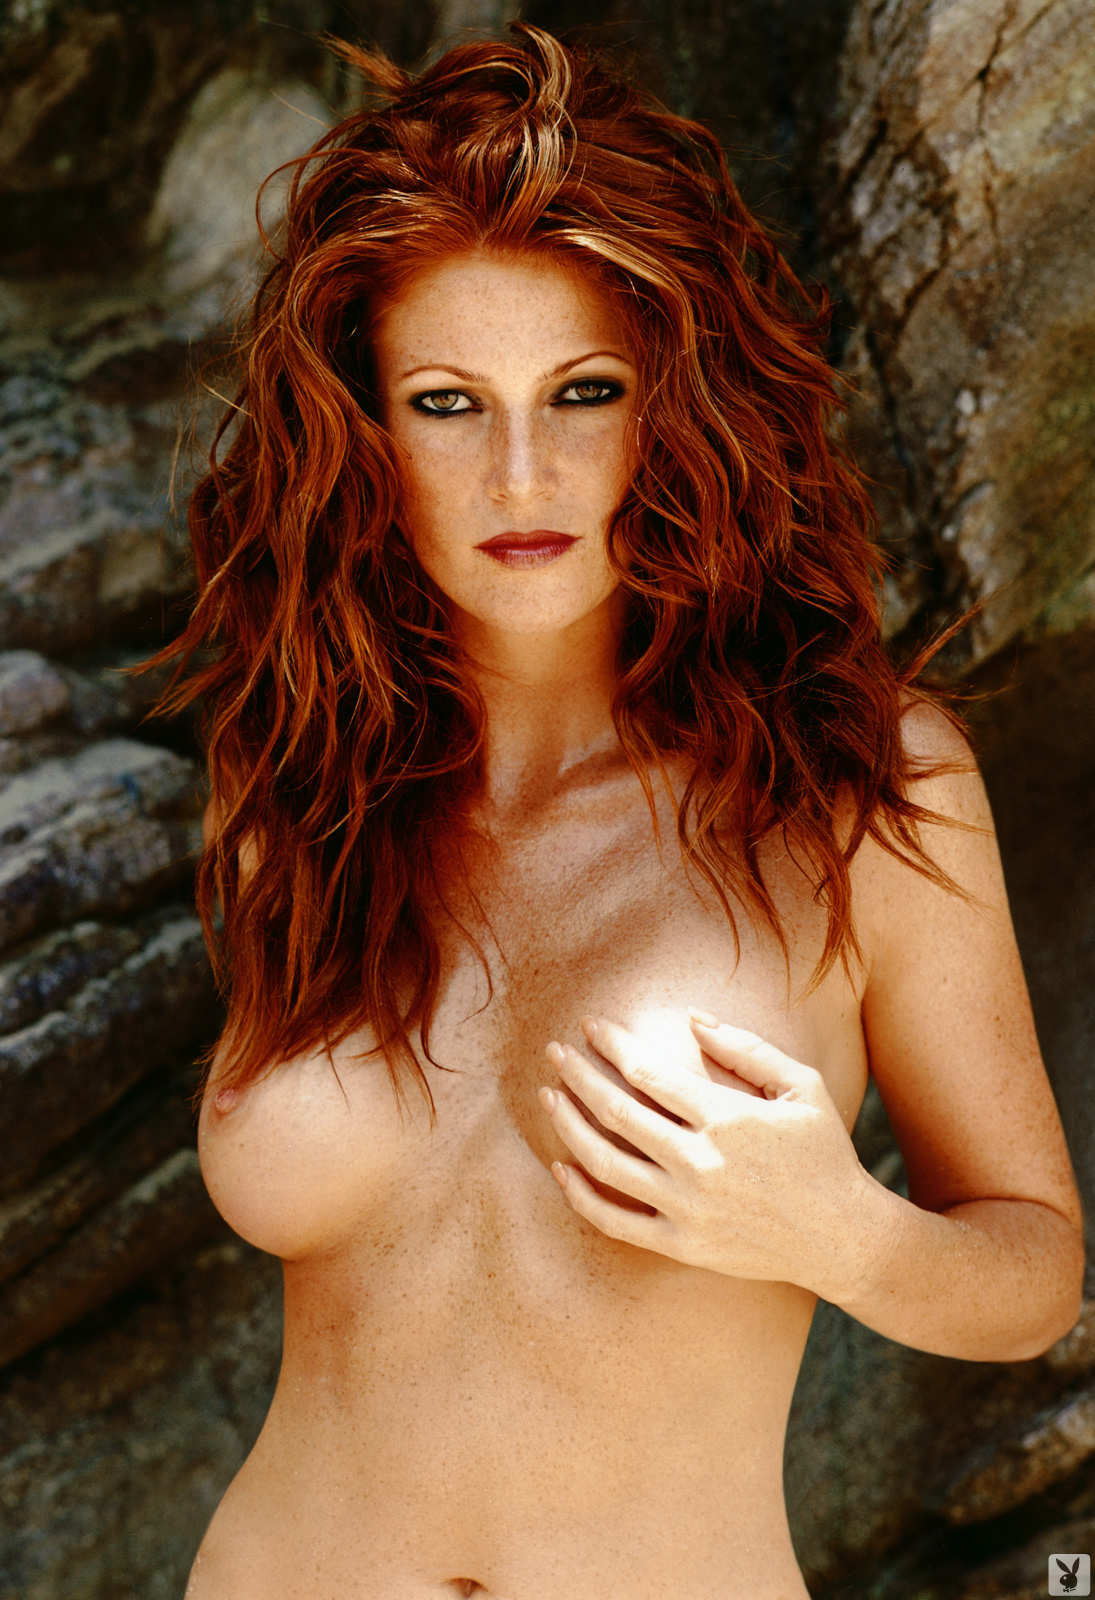 Angie Everhart Naked Pics angie everhart nude pictures. rating = 8.99/10